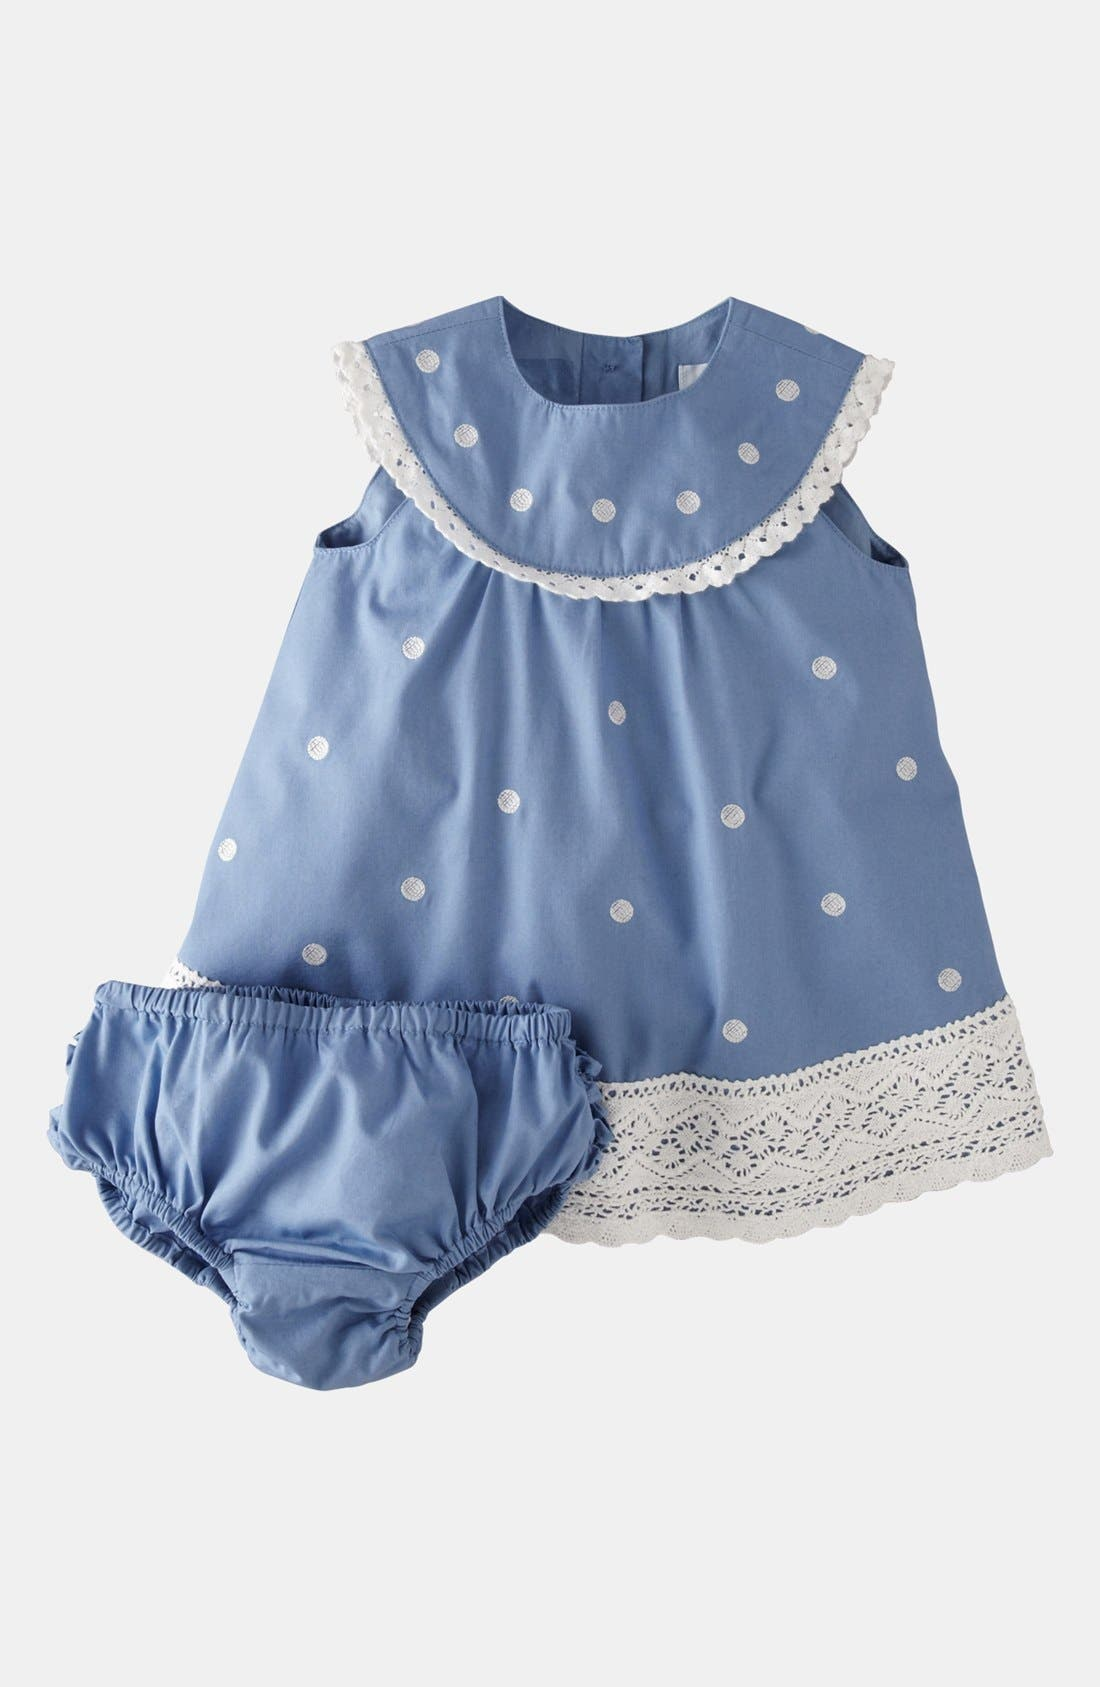 Alternate Image 1 Selected - Mini Boden 'Crochet Trim' Dress & Bloomers (Baby)